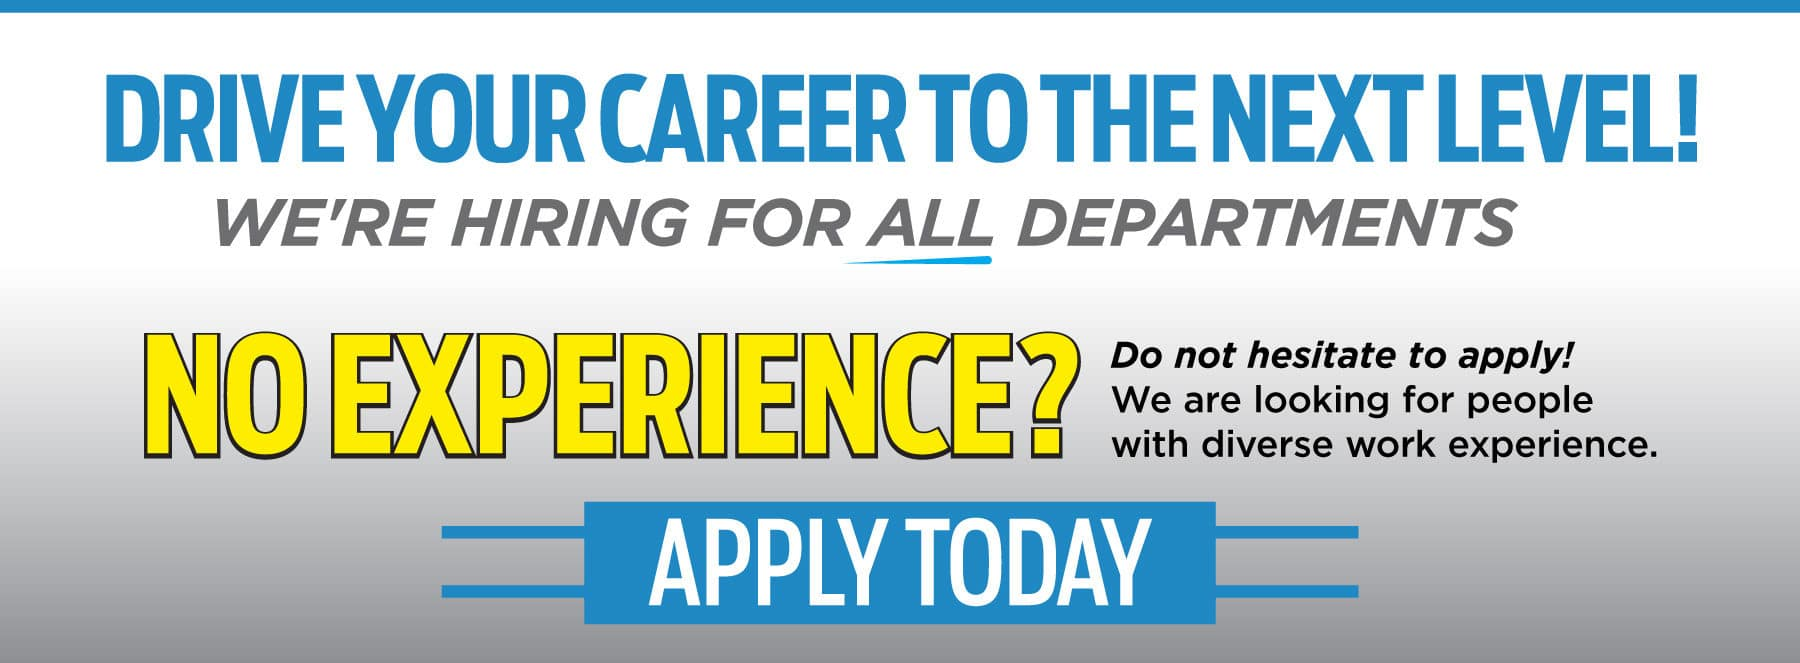 Drive Your Career to the Next Level - Apply Now